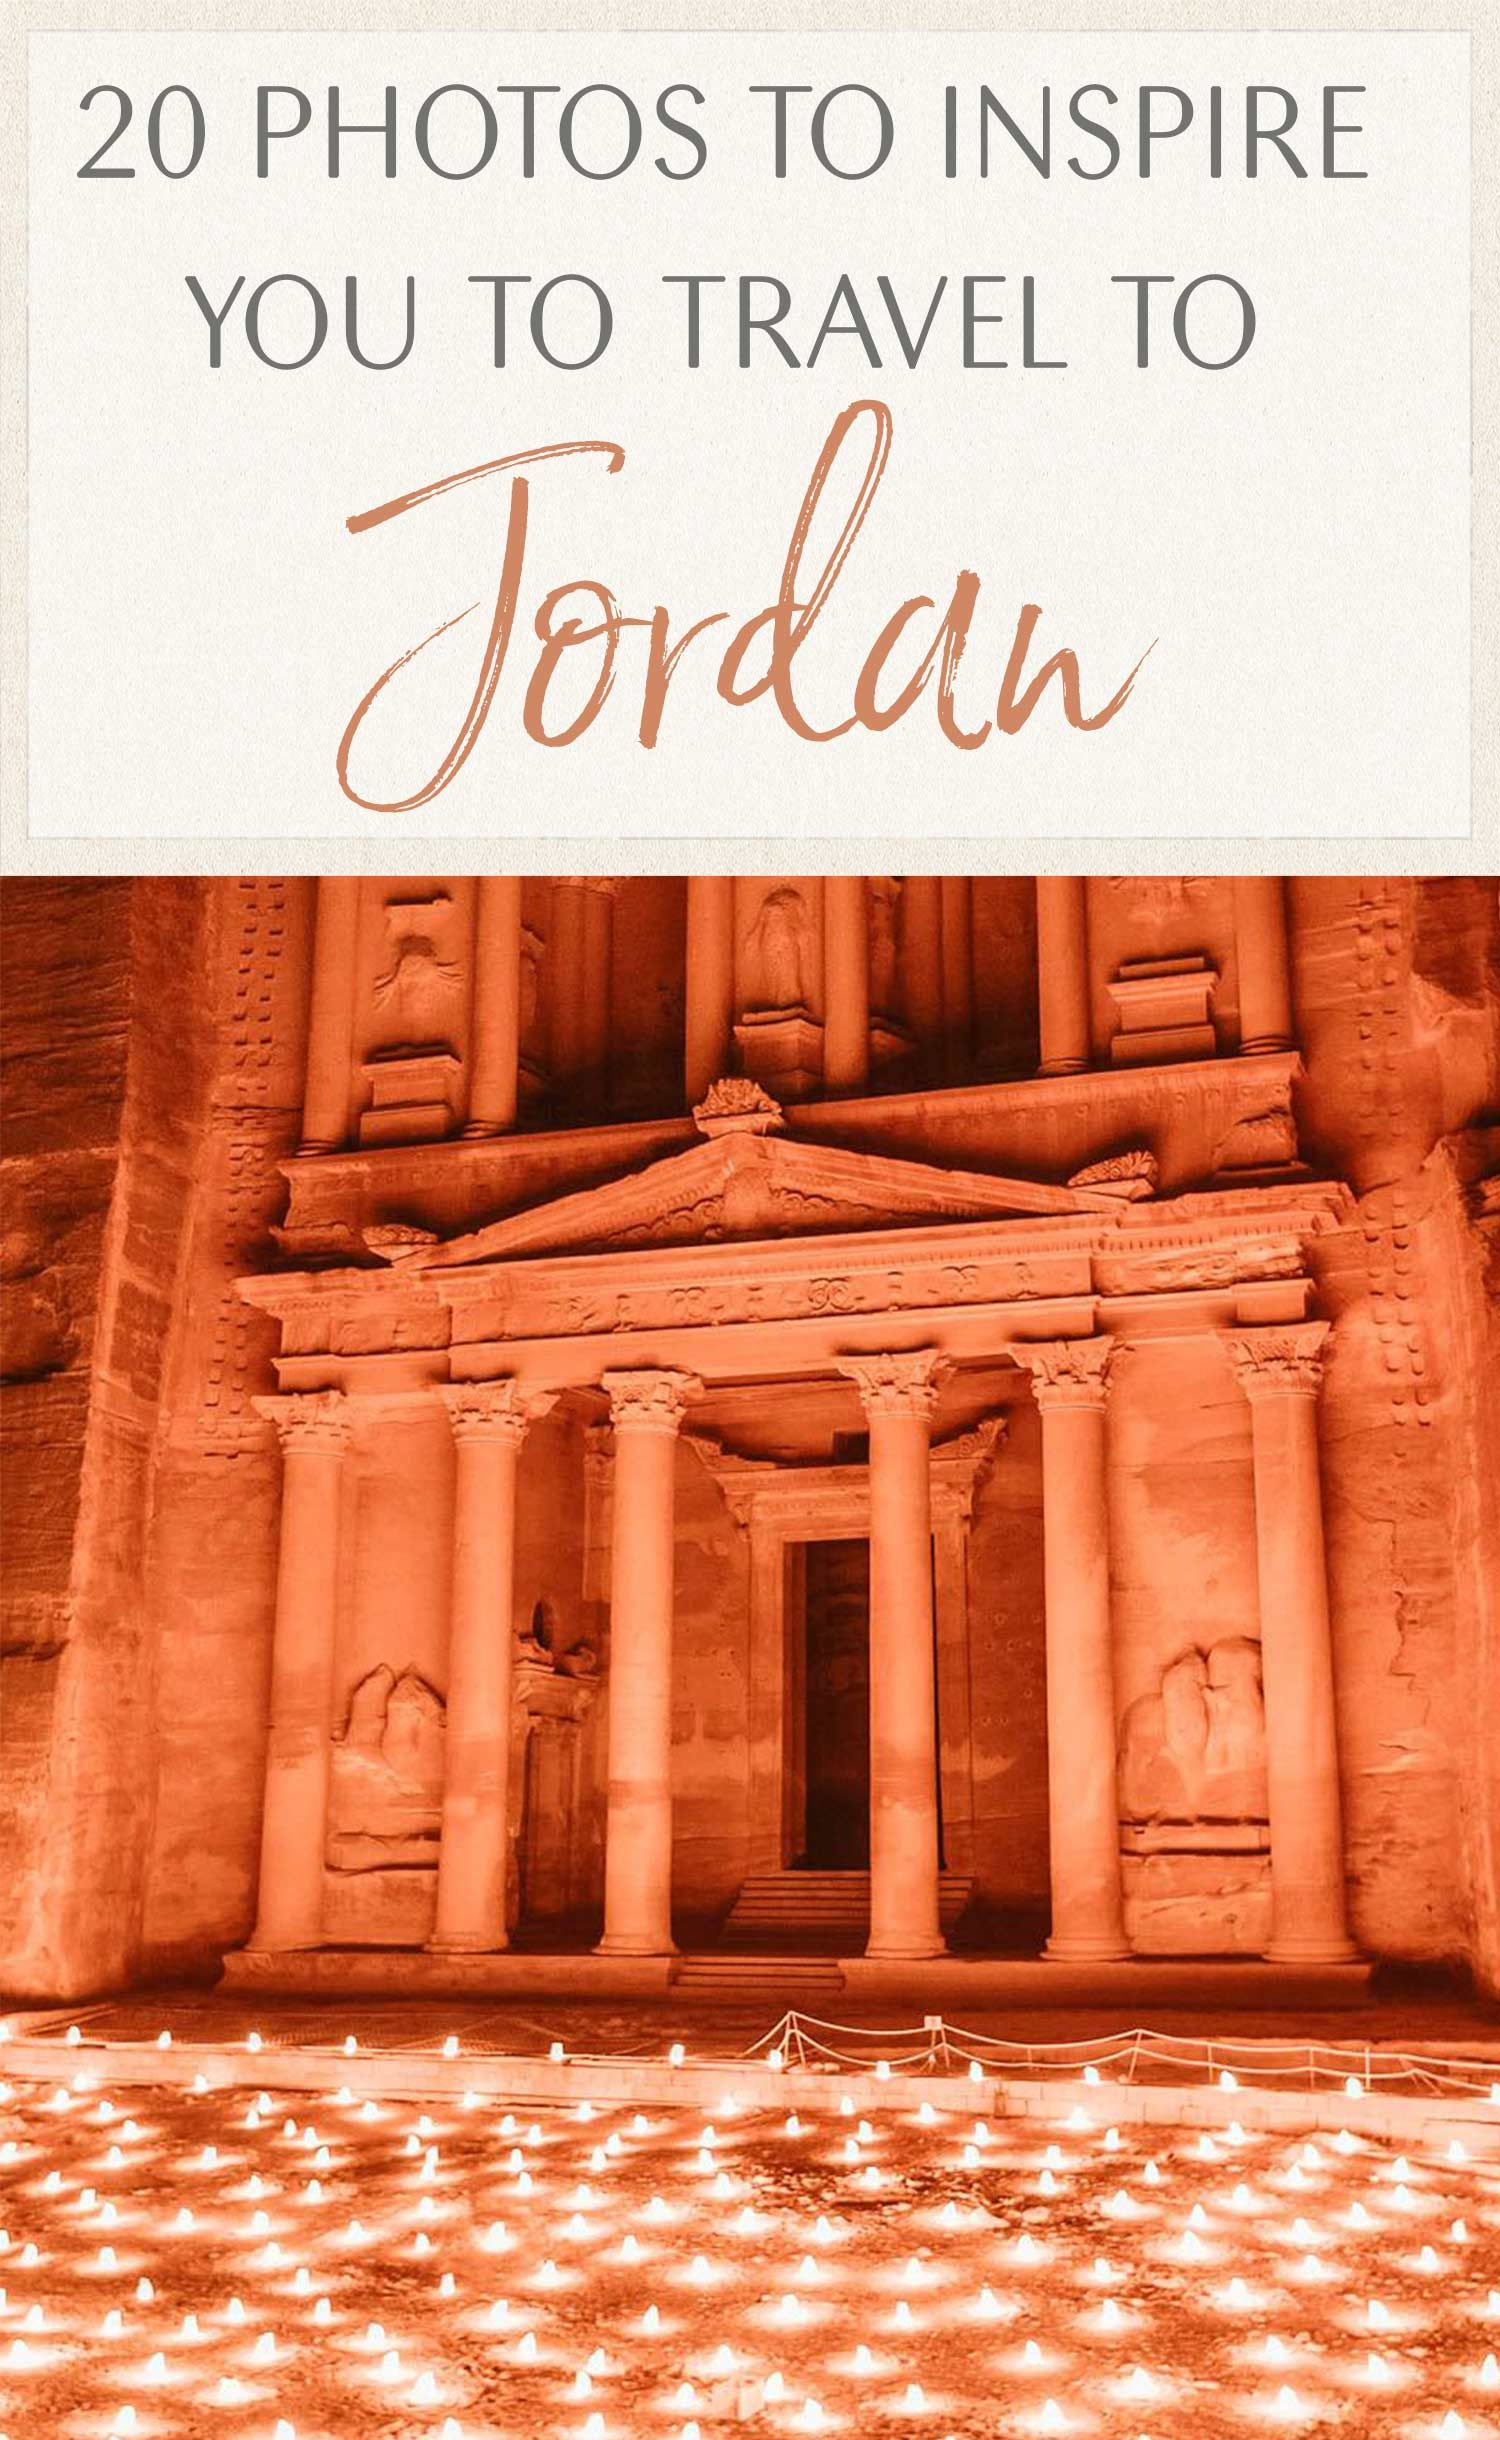 20 Photos to Inspire You to Visit Jordan #traveltojordan